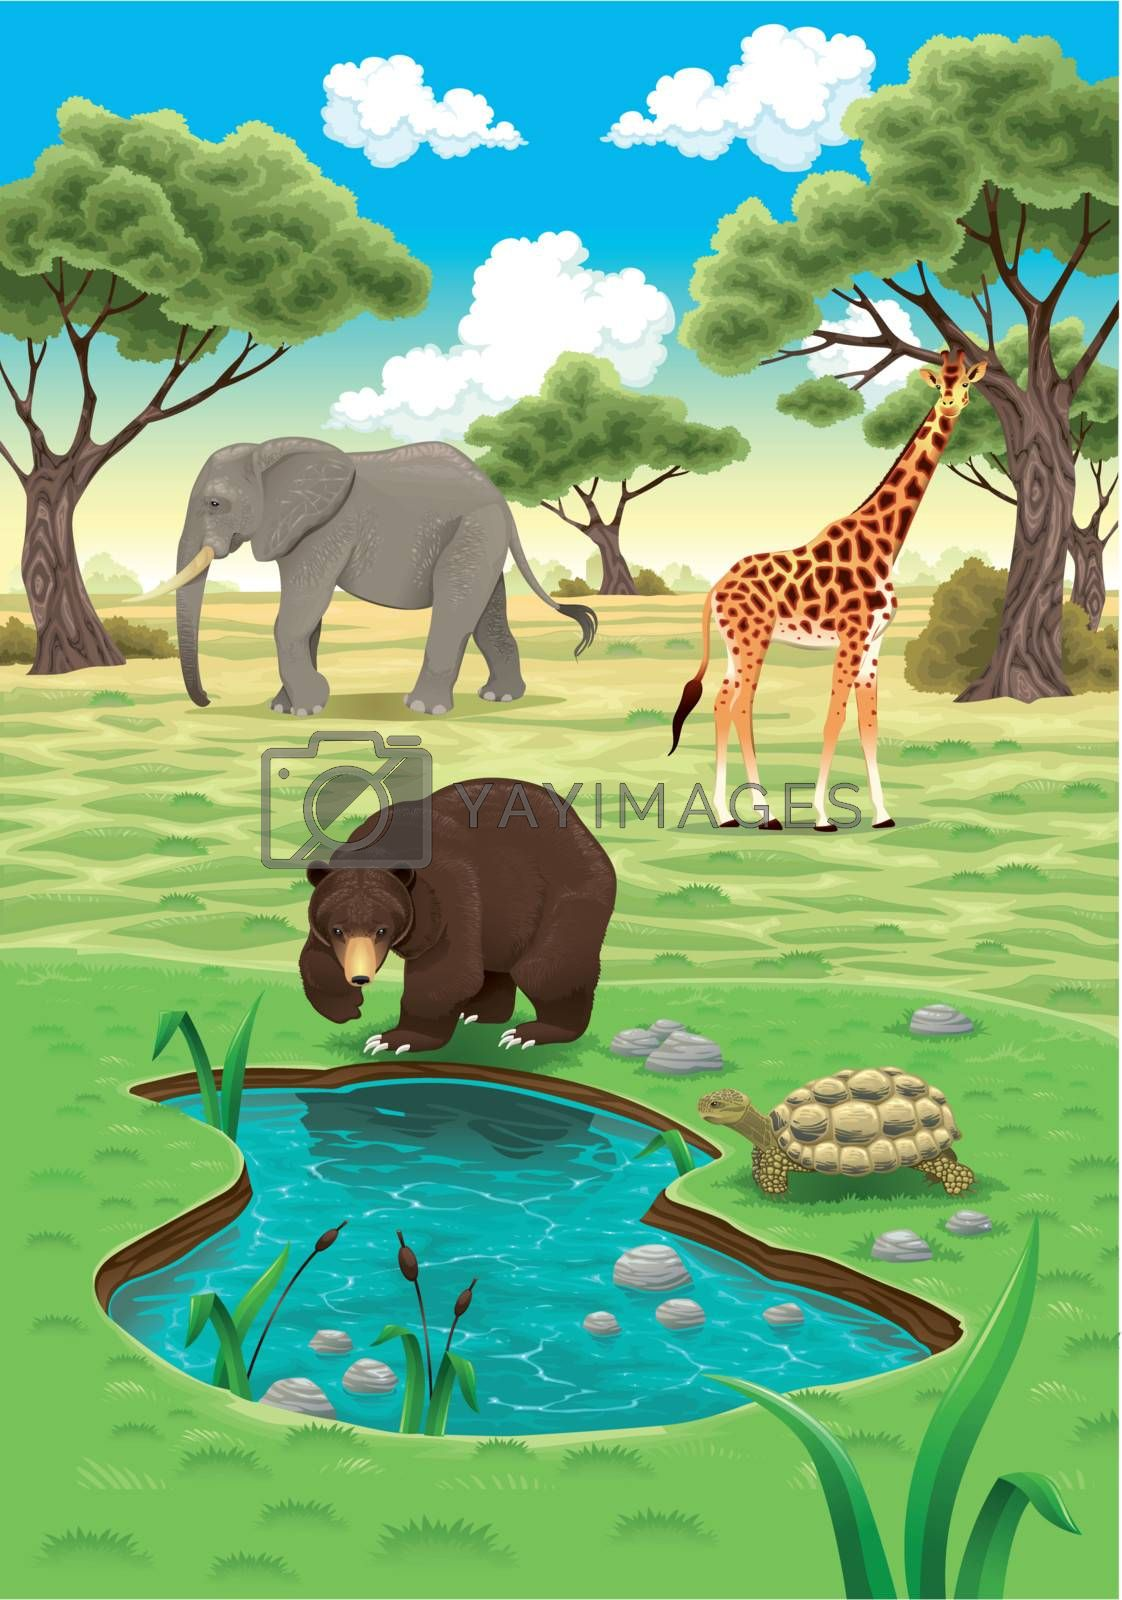 Animals in the nature. Vector realistic illustration.